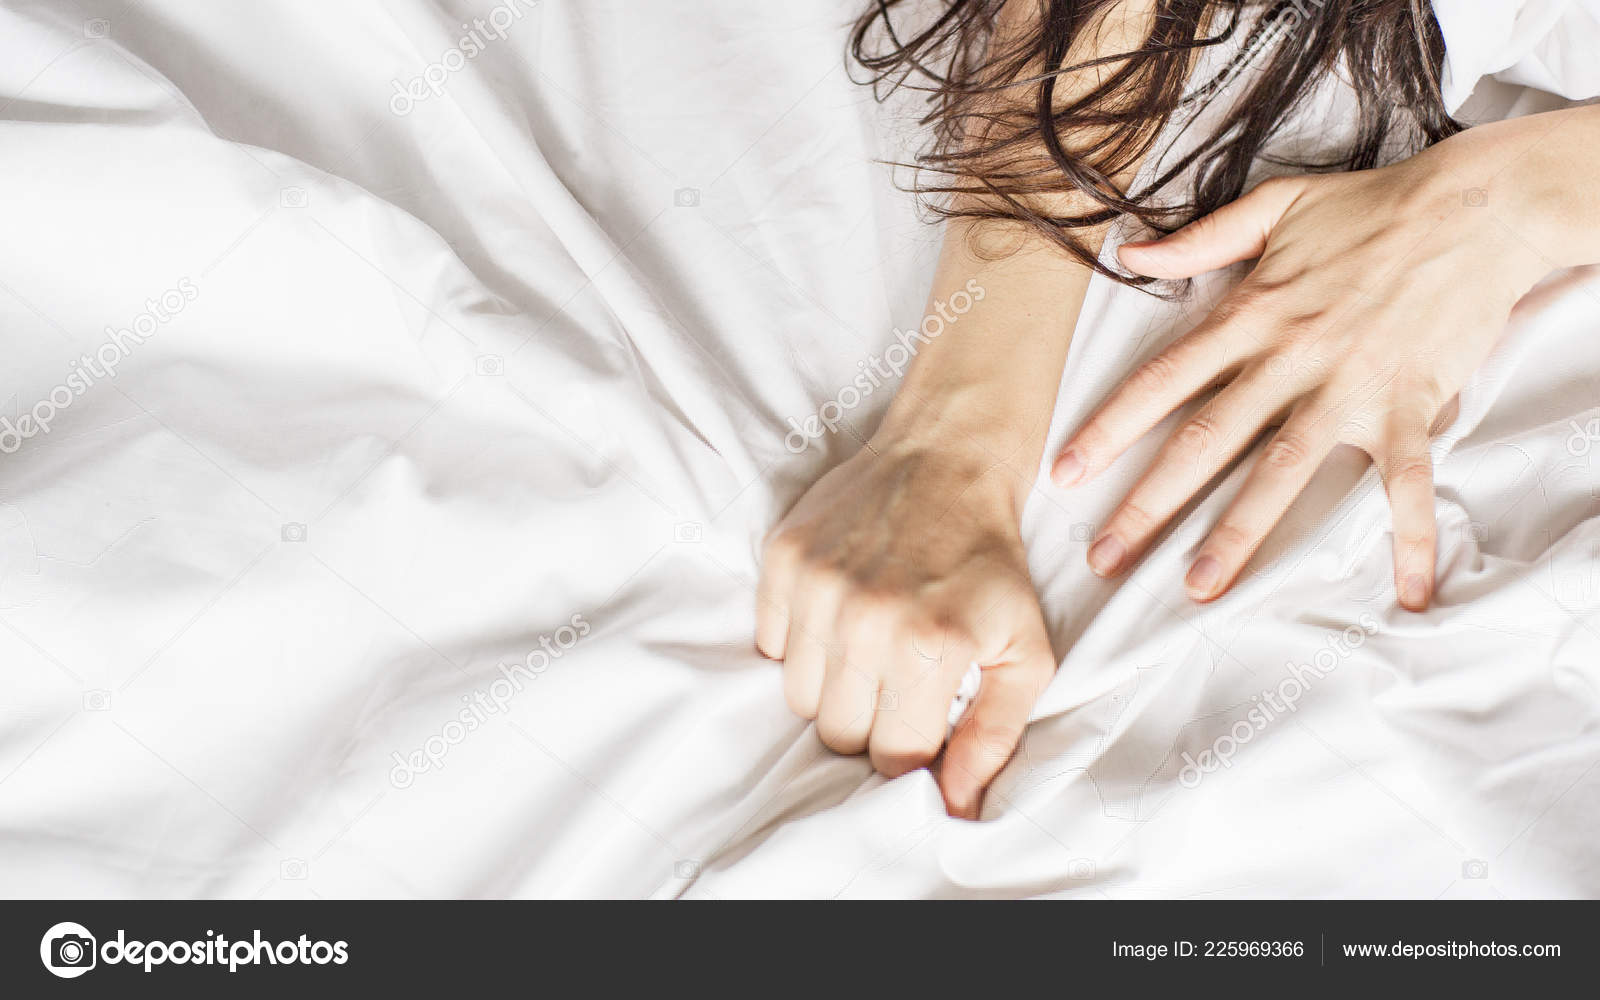 Couples Hold Hands Together Bed Close Touching Each Other White — Stock  Photo © dmitryvbel.rambler.ru #225969366